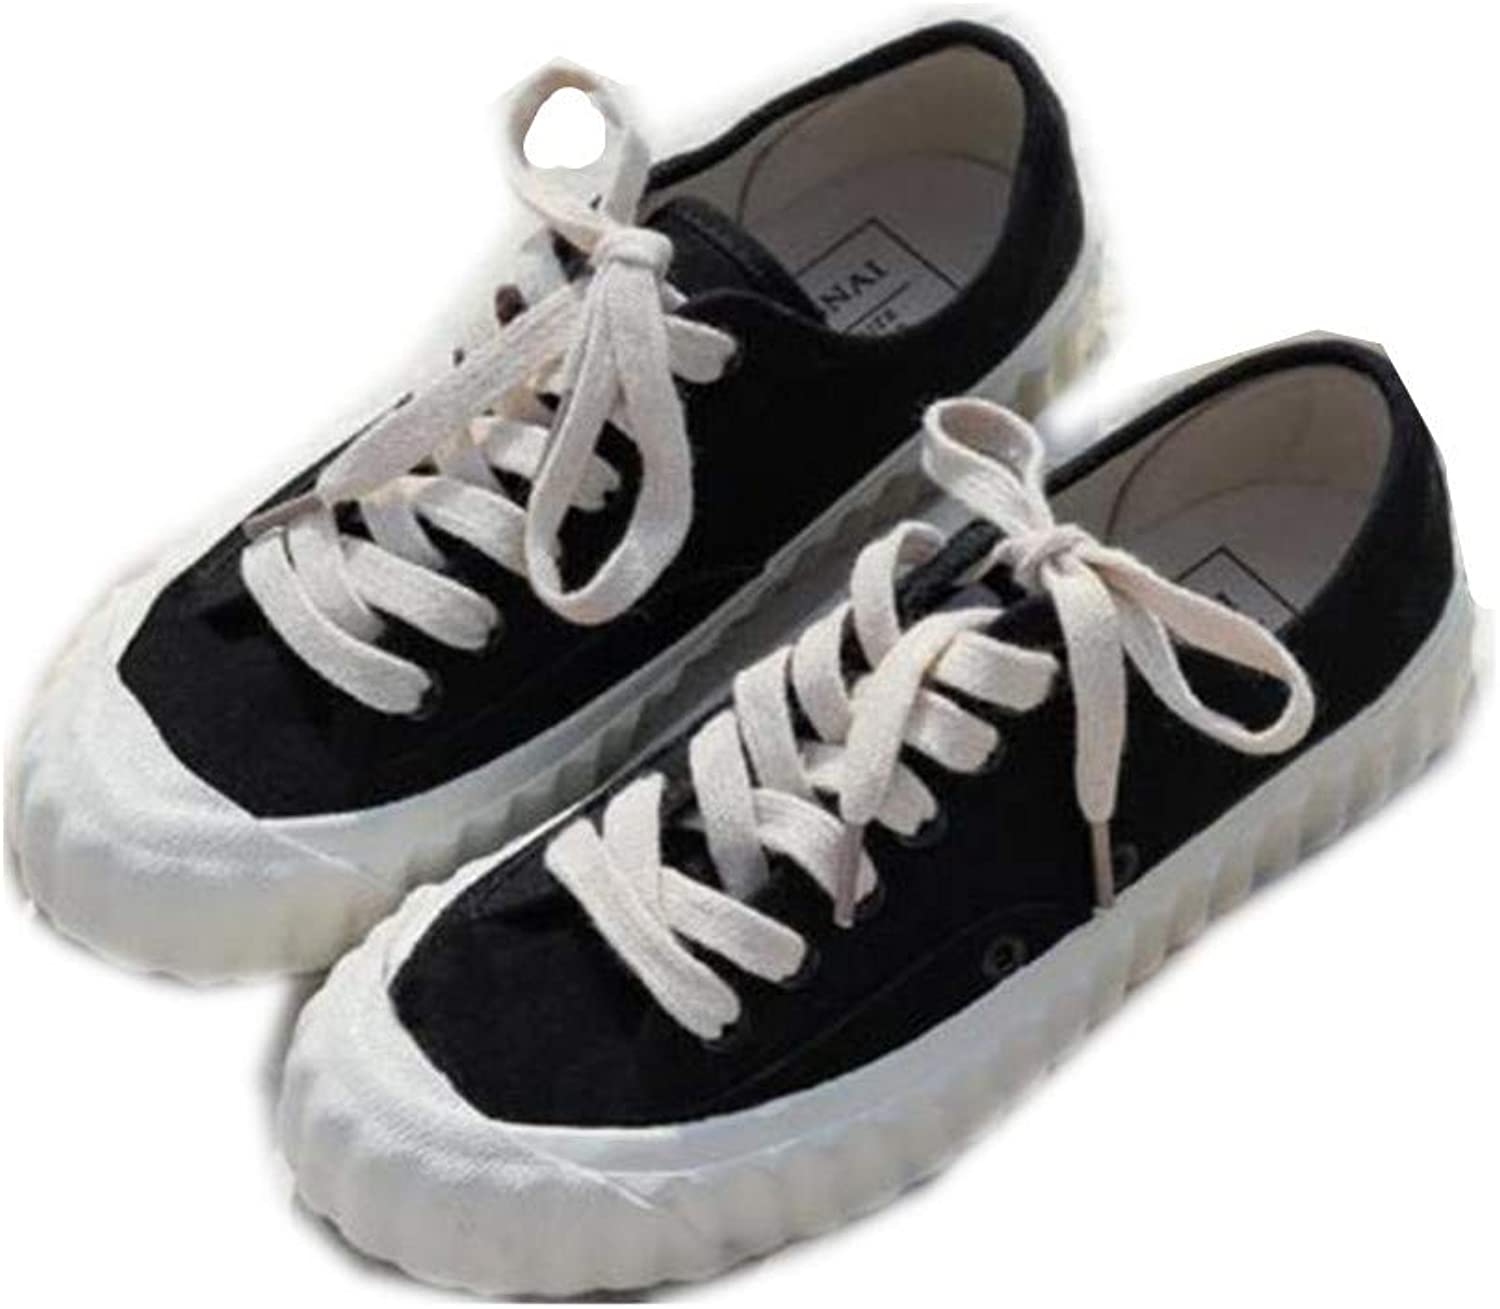 Women's Canvas shoes Sneakers Low Cut Lace Up Fashion Comfortable Walking Flats